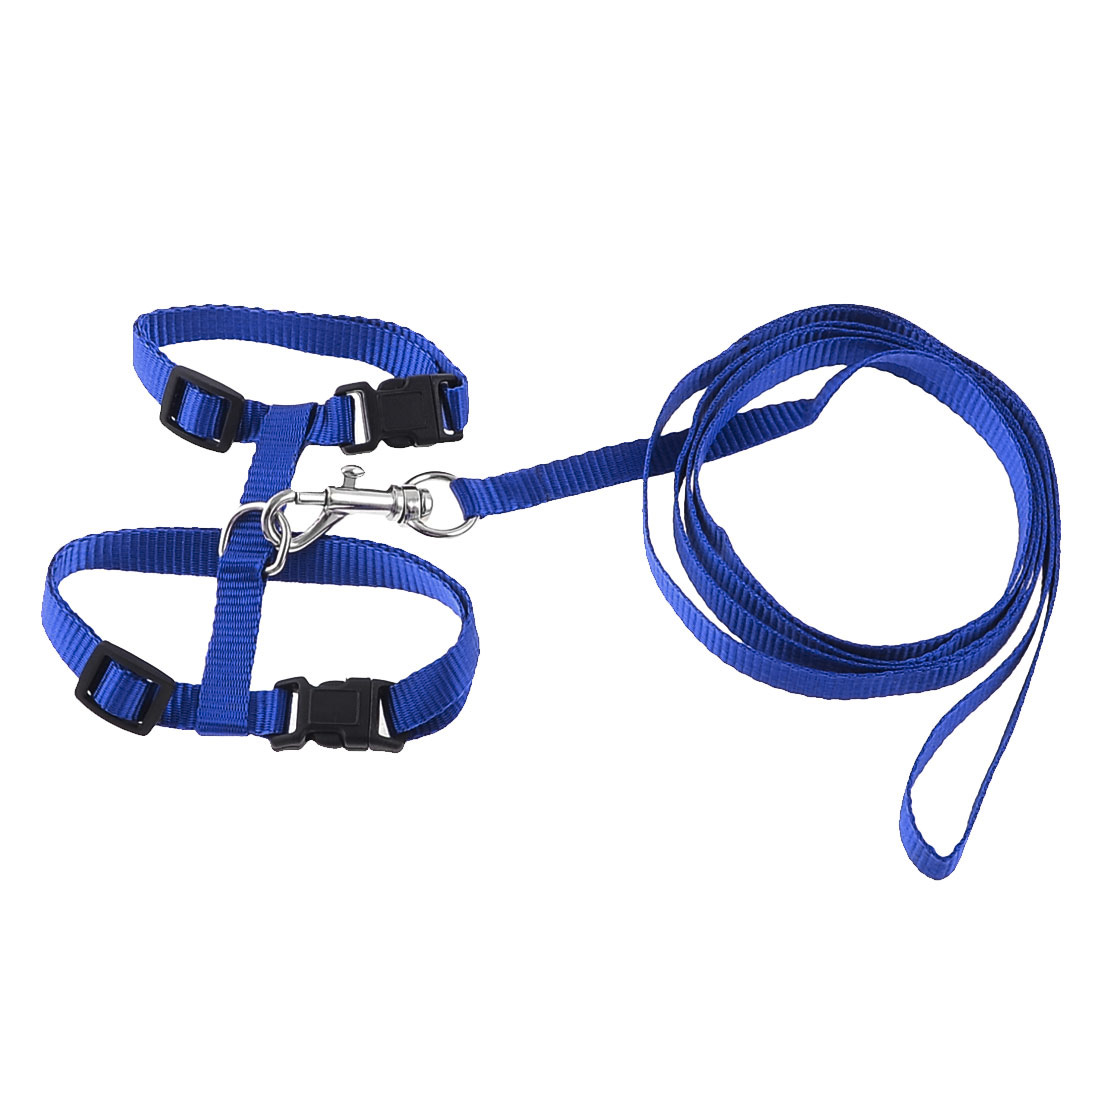 Adjustable Blue Nylon Pet Cat Dog Release Buckle Harness Leash 121cm Length